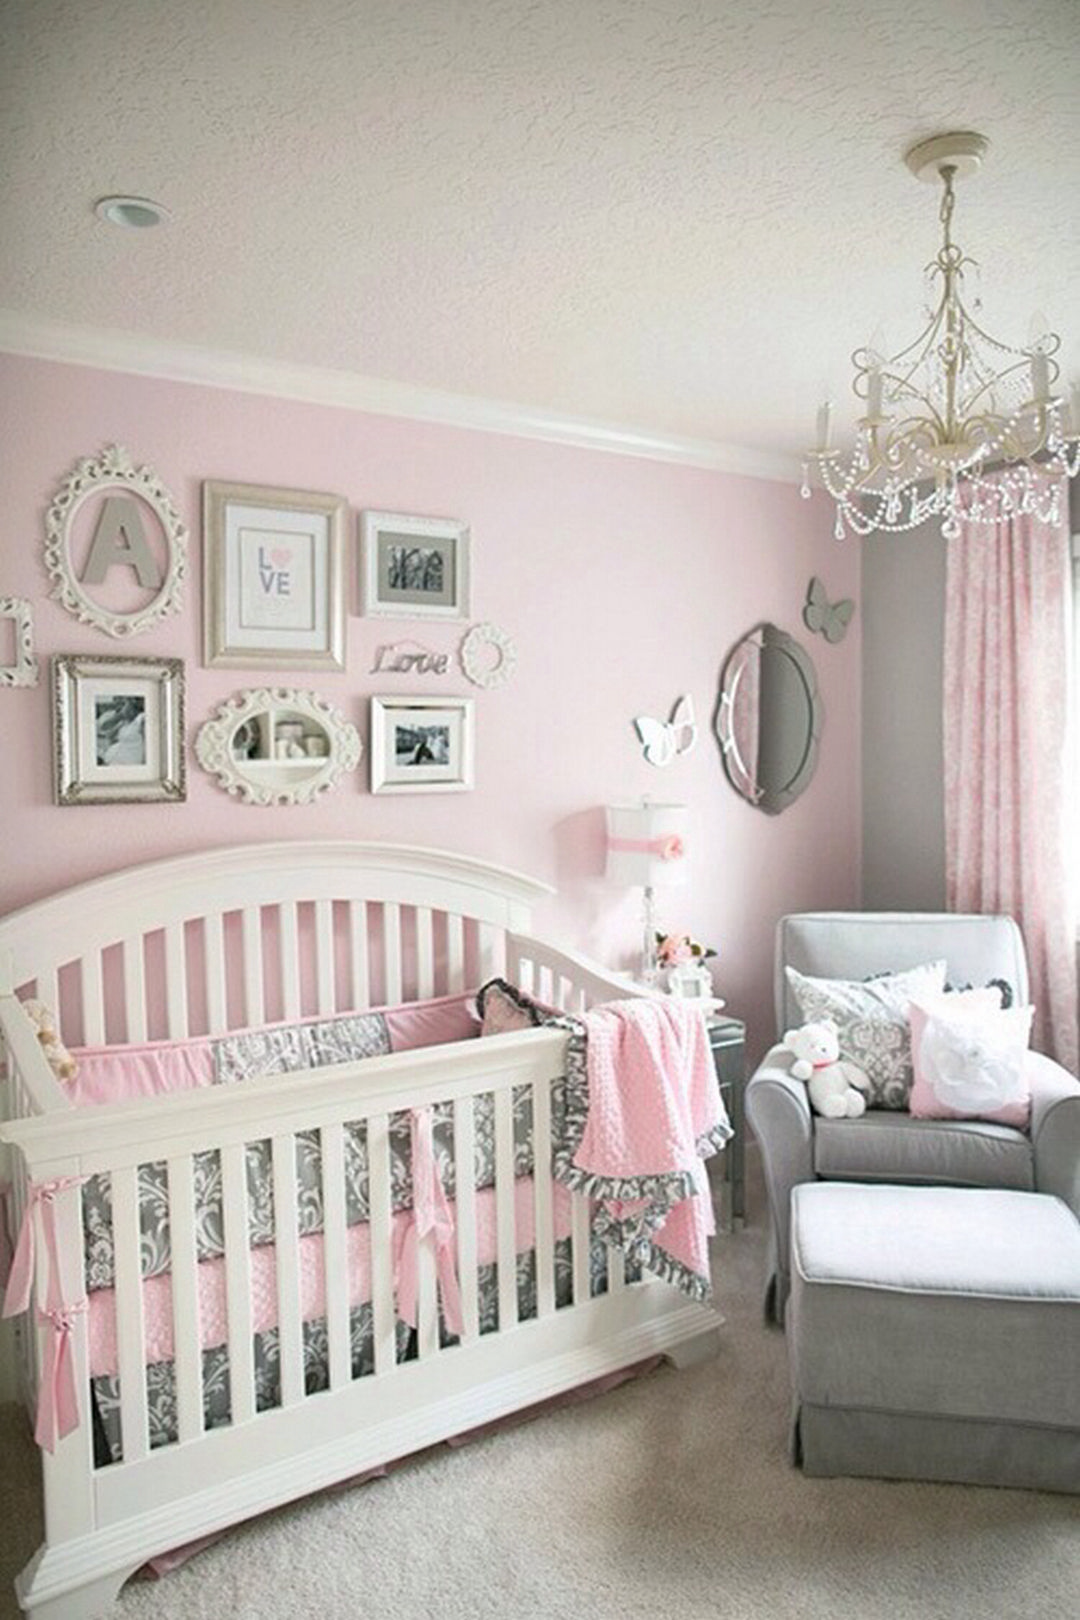 31 cute baby girl nursery ideas  https://www.futuristarchitecture.com/17118-baby-girl-nursery.html IICOQAN